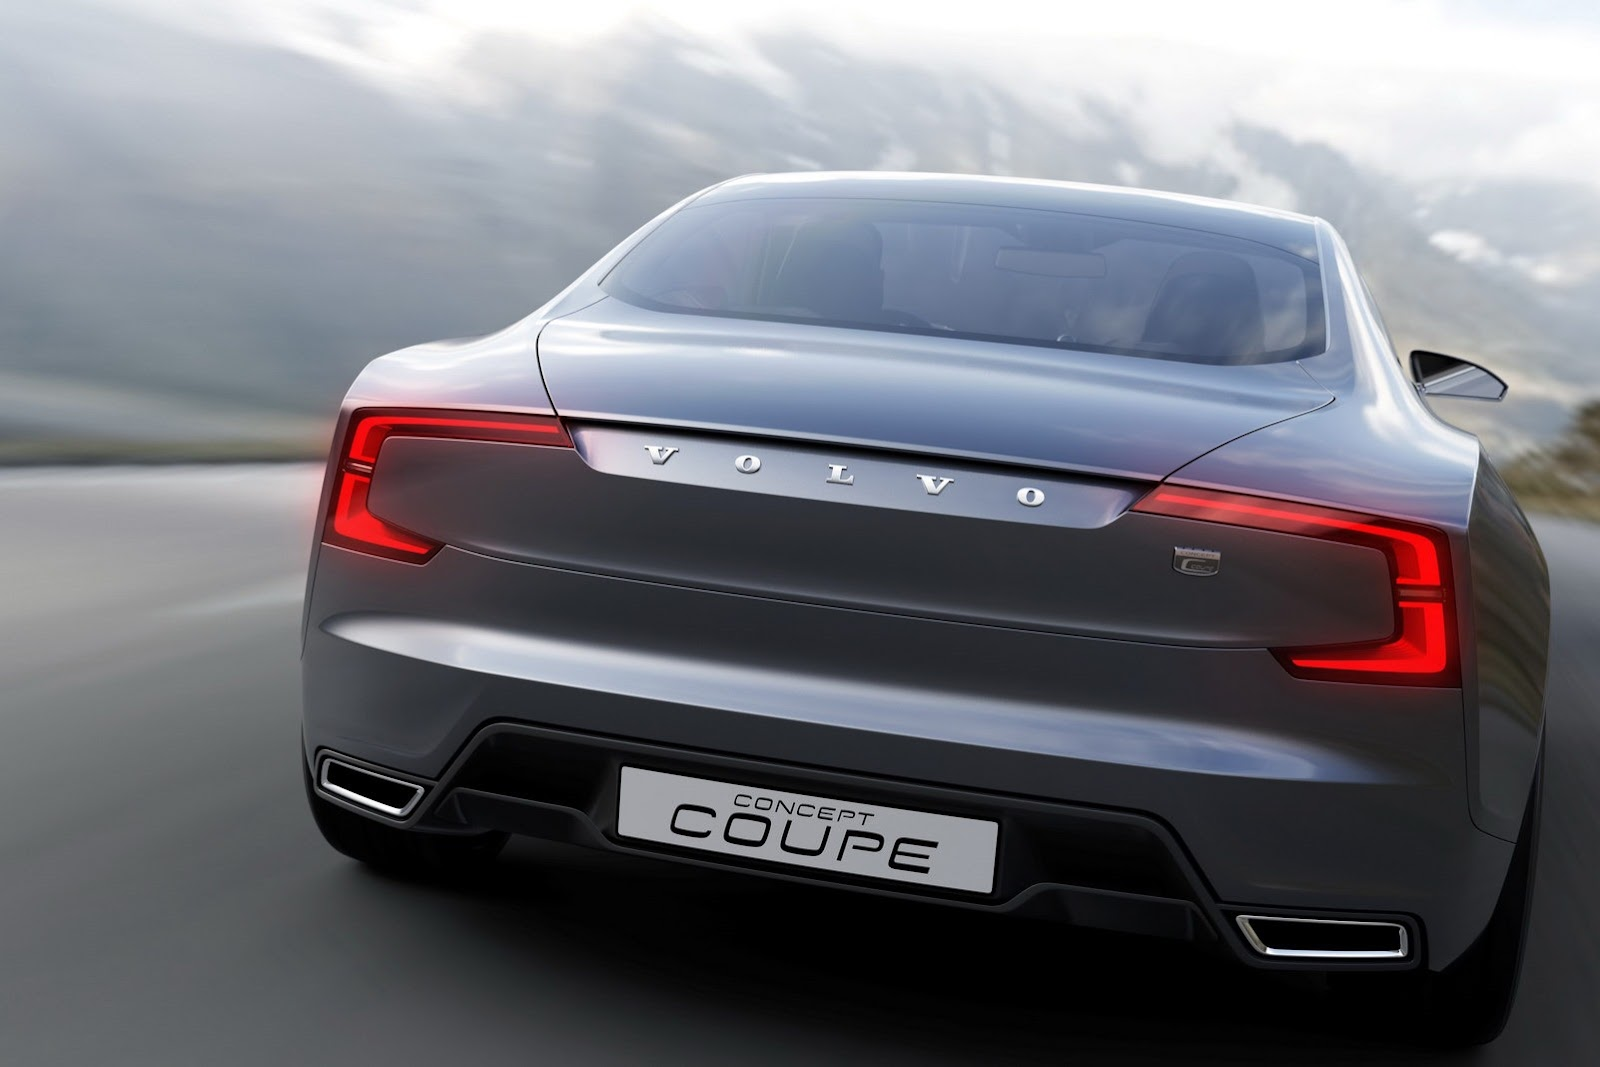 Volvo-Concept-Coupe-6%25255B2%25255D.jpg